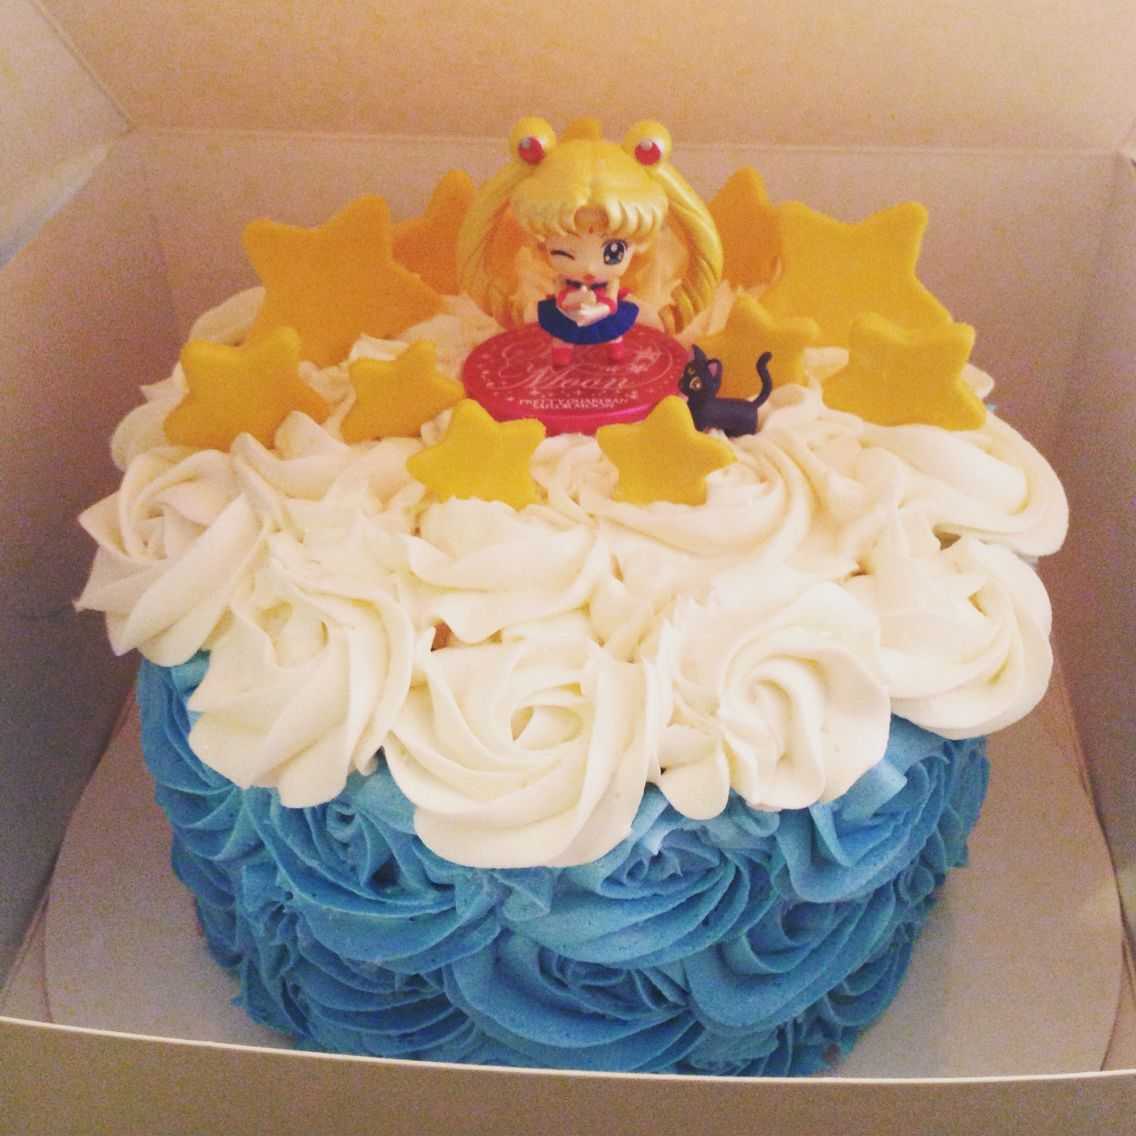 Sailor Moon Cake For The Birthday Girl With Images Sailor Moon